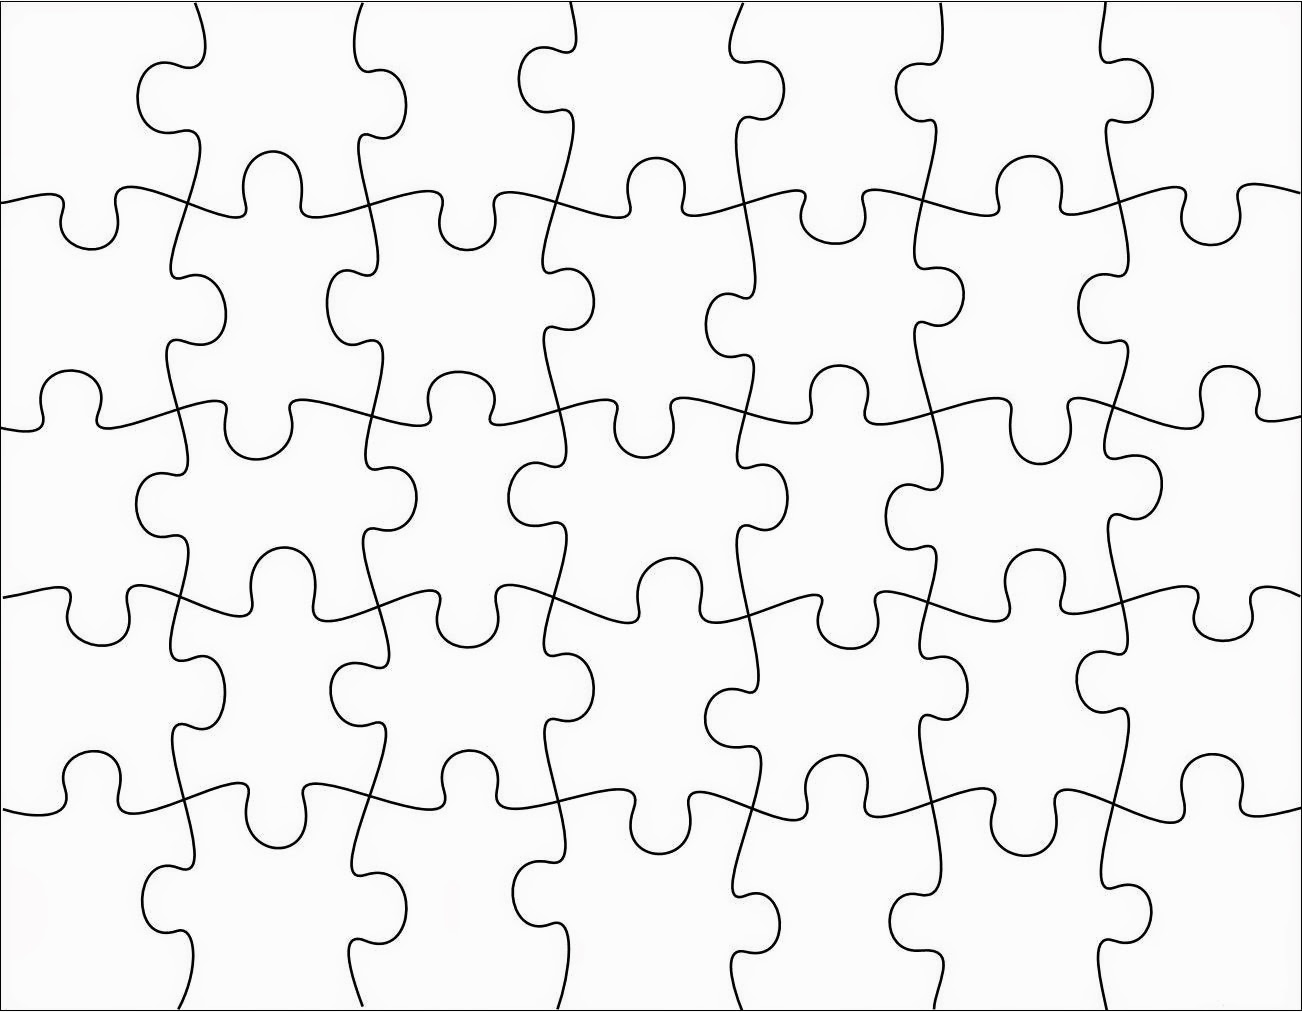 Gratifying image regarding printable jigsaw puzzles